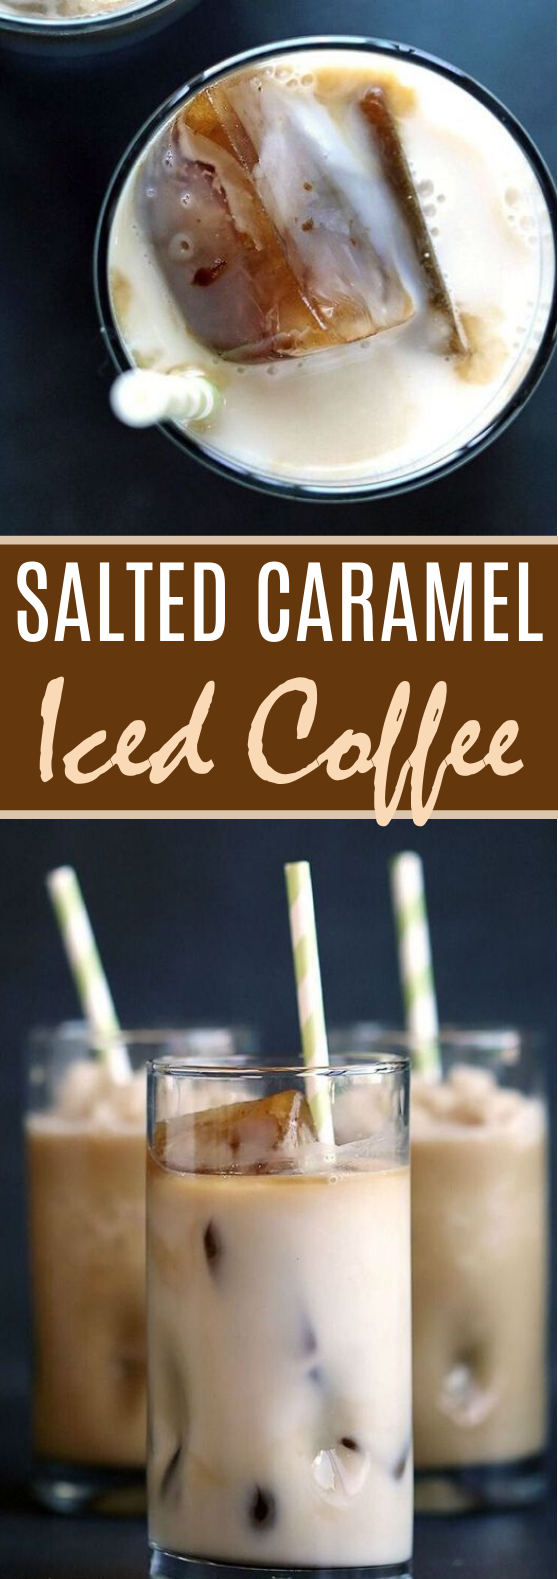 Easy Salted Caramel Iced or Frozen Coffee #drinks #coffee #iced #beverages #summer